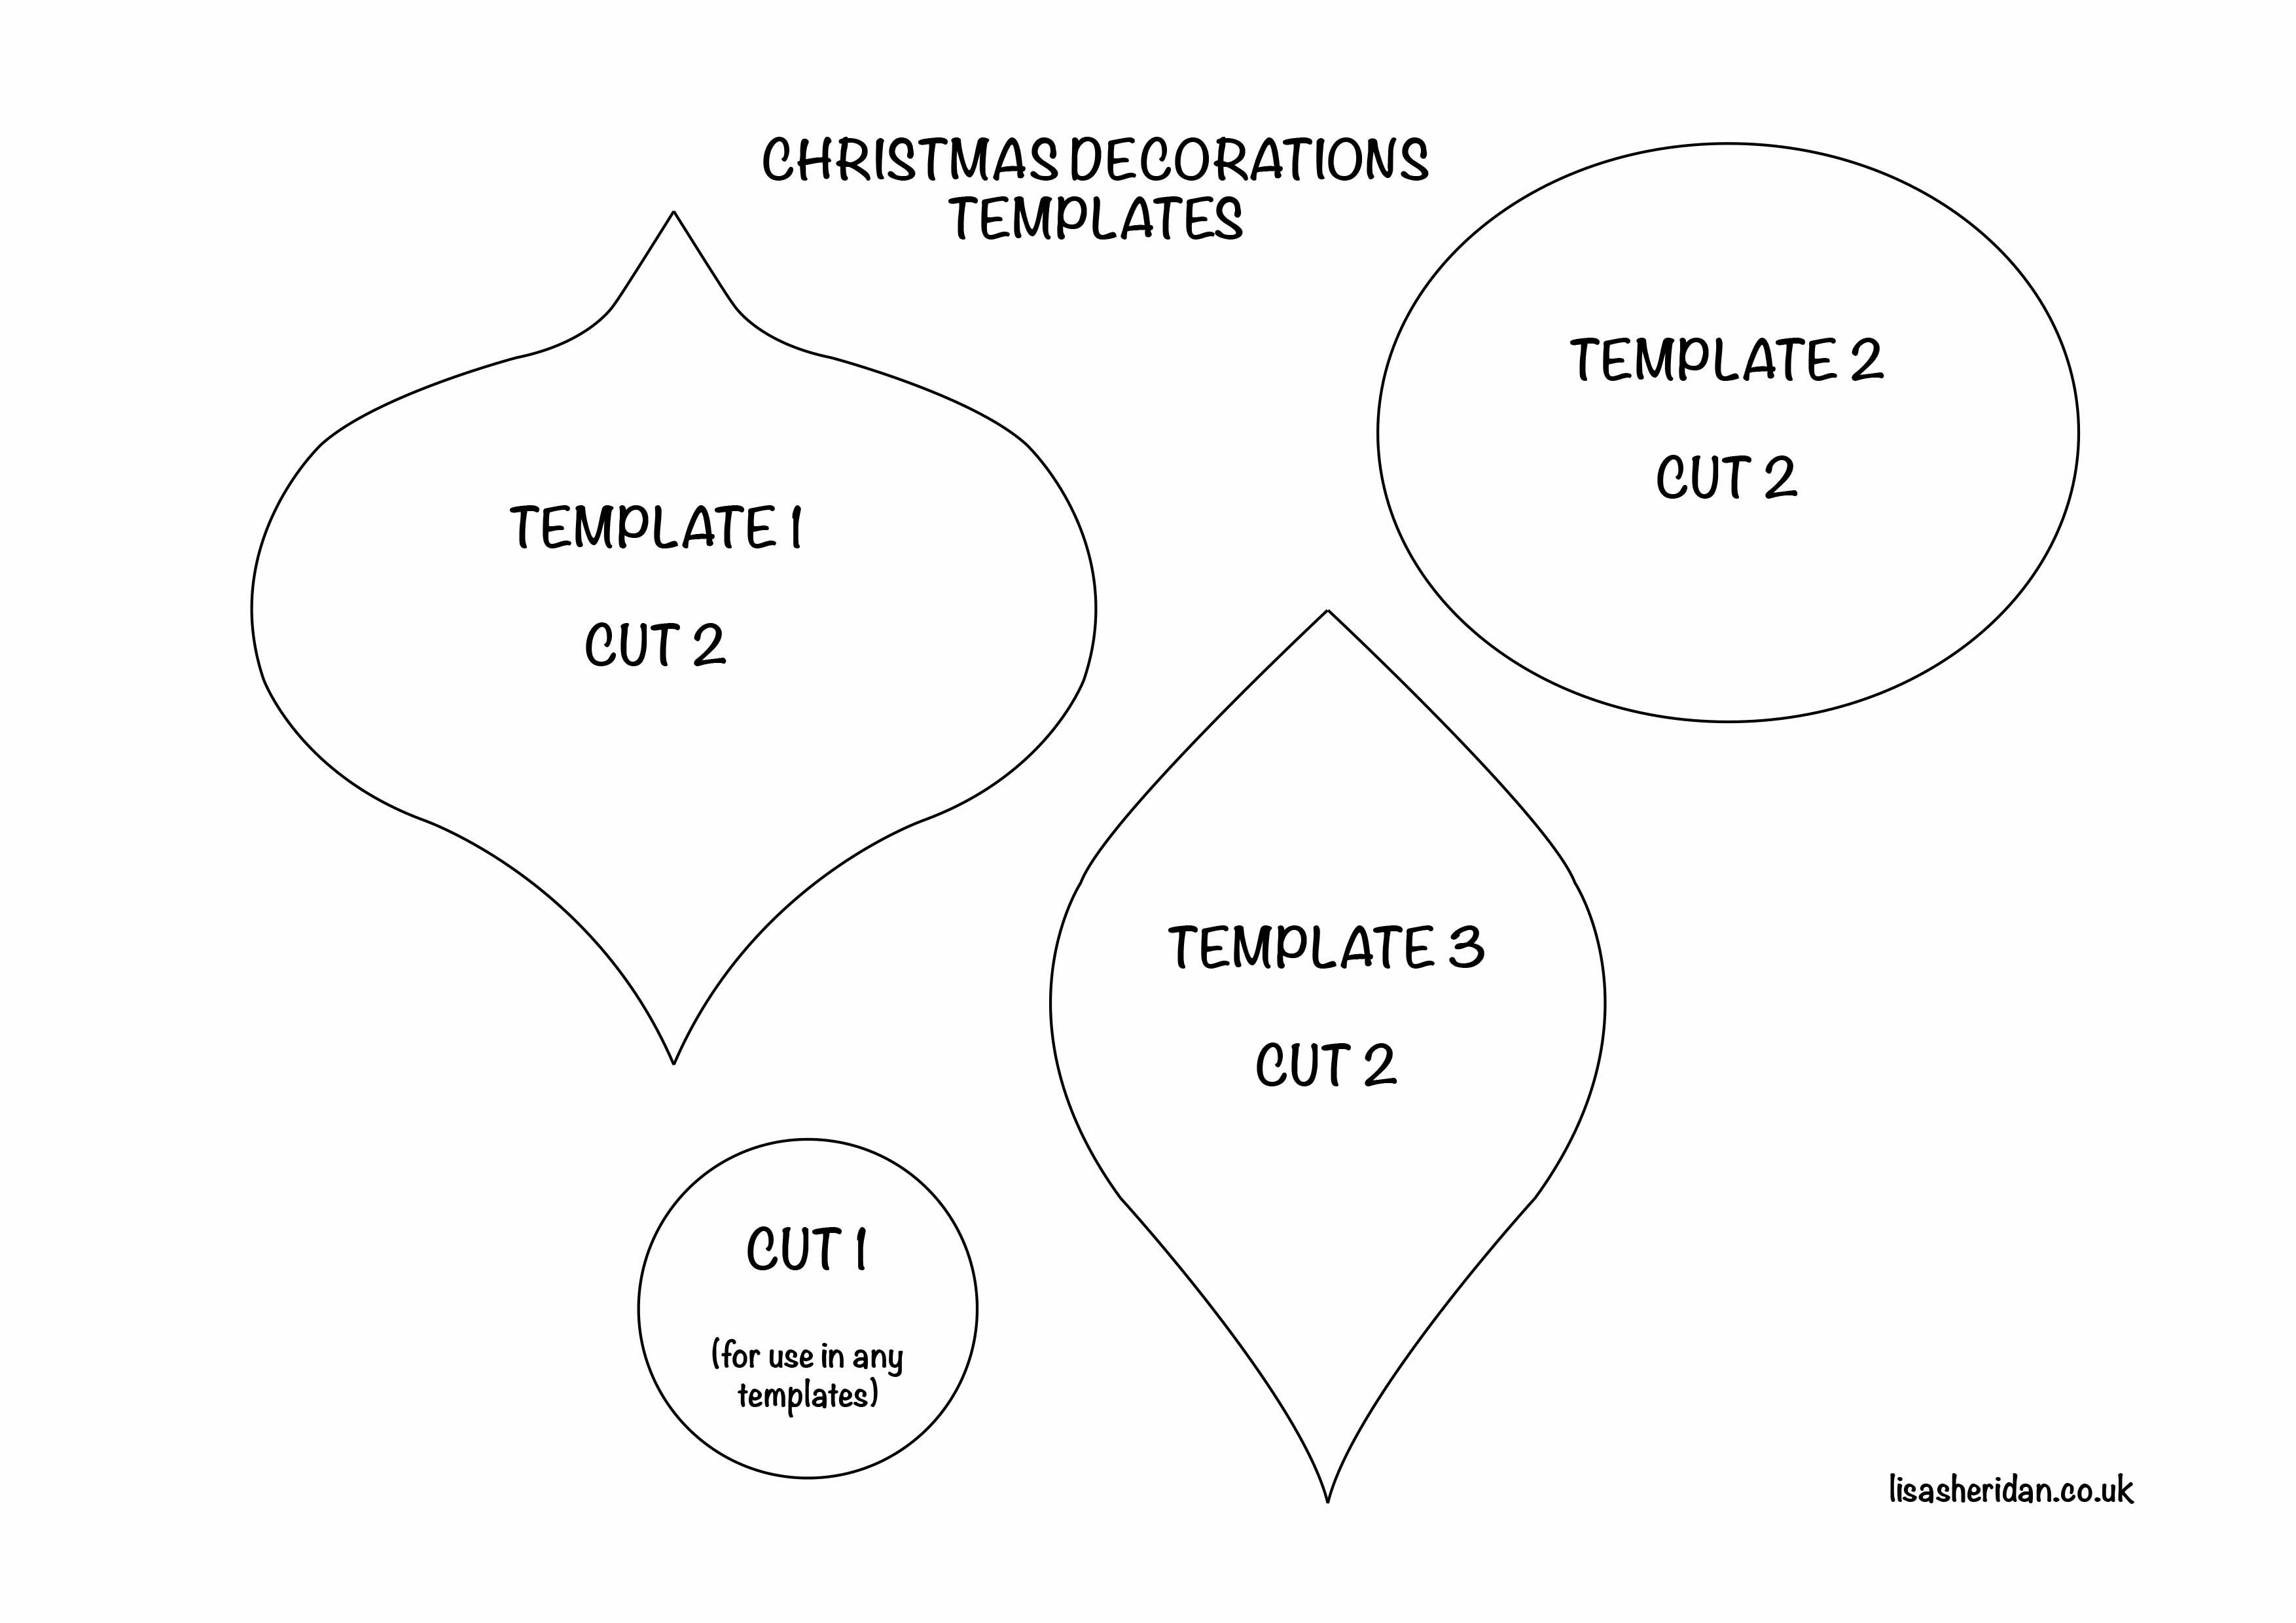 Christmas Ornament Shapes Cut Out Christmas Decorations Template